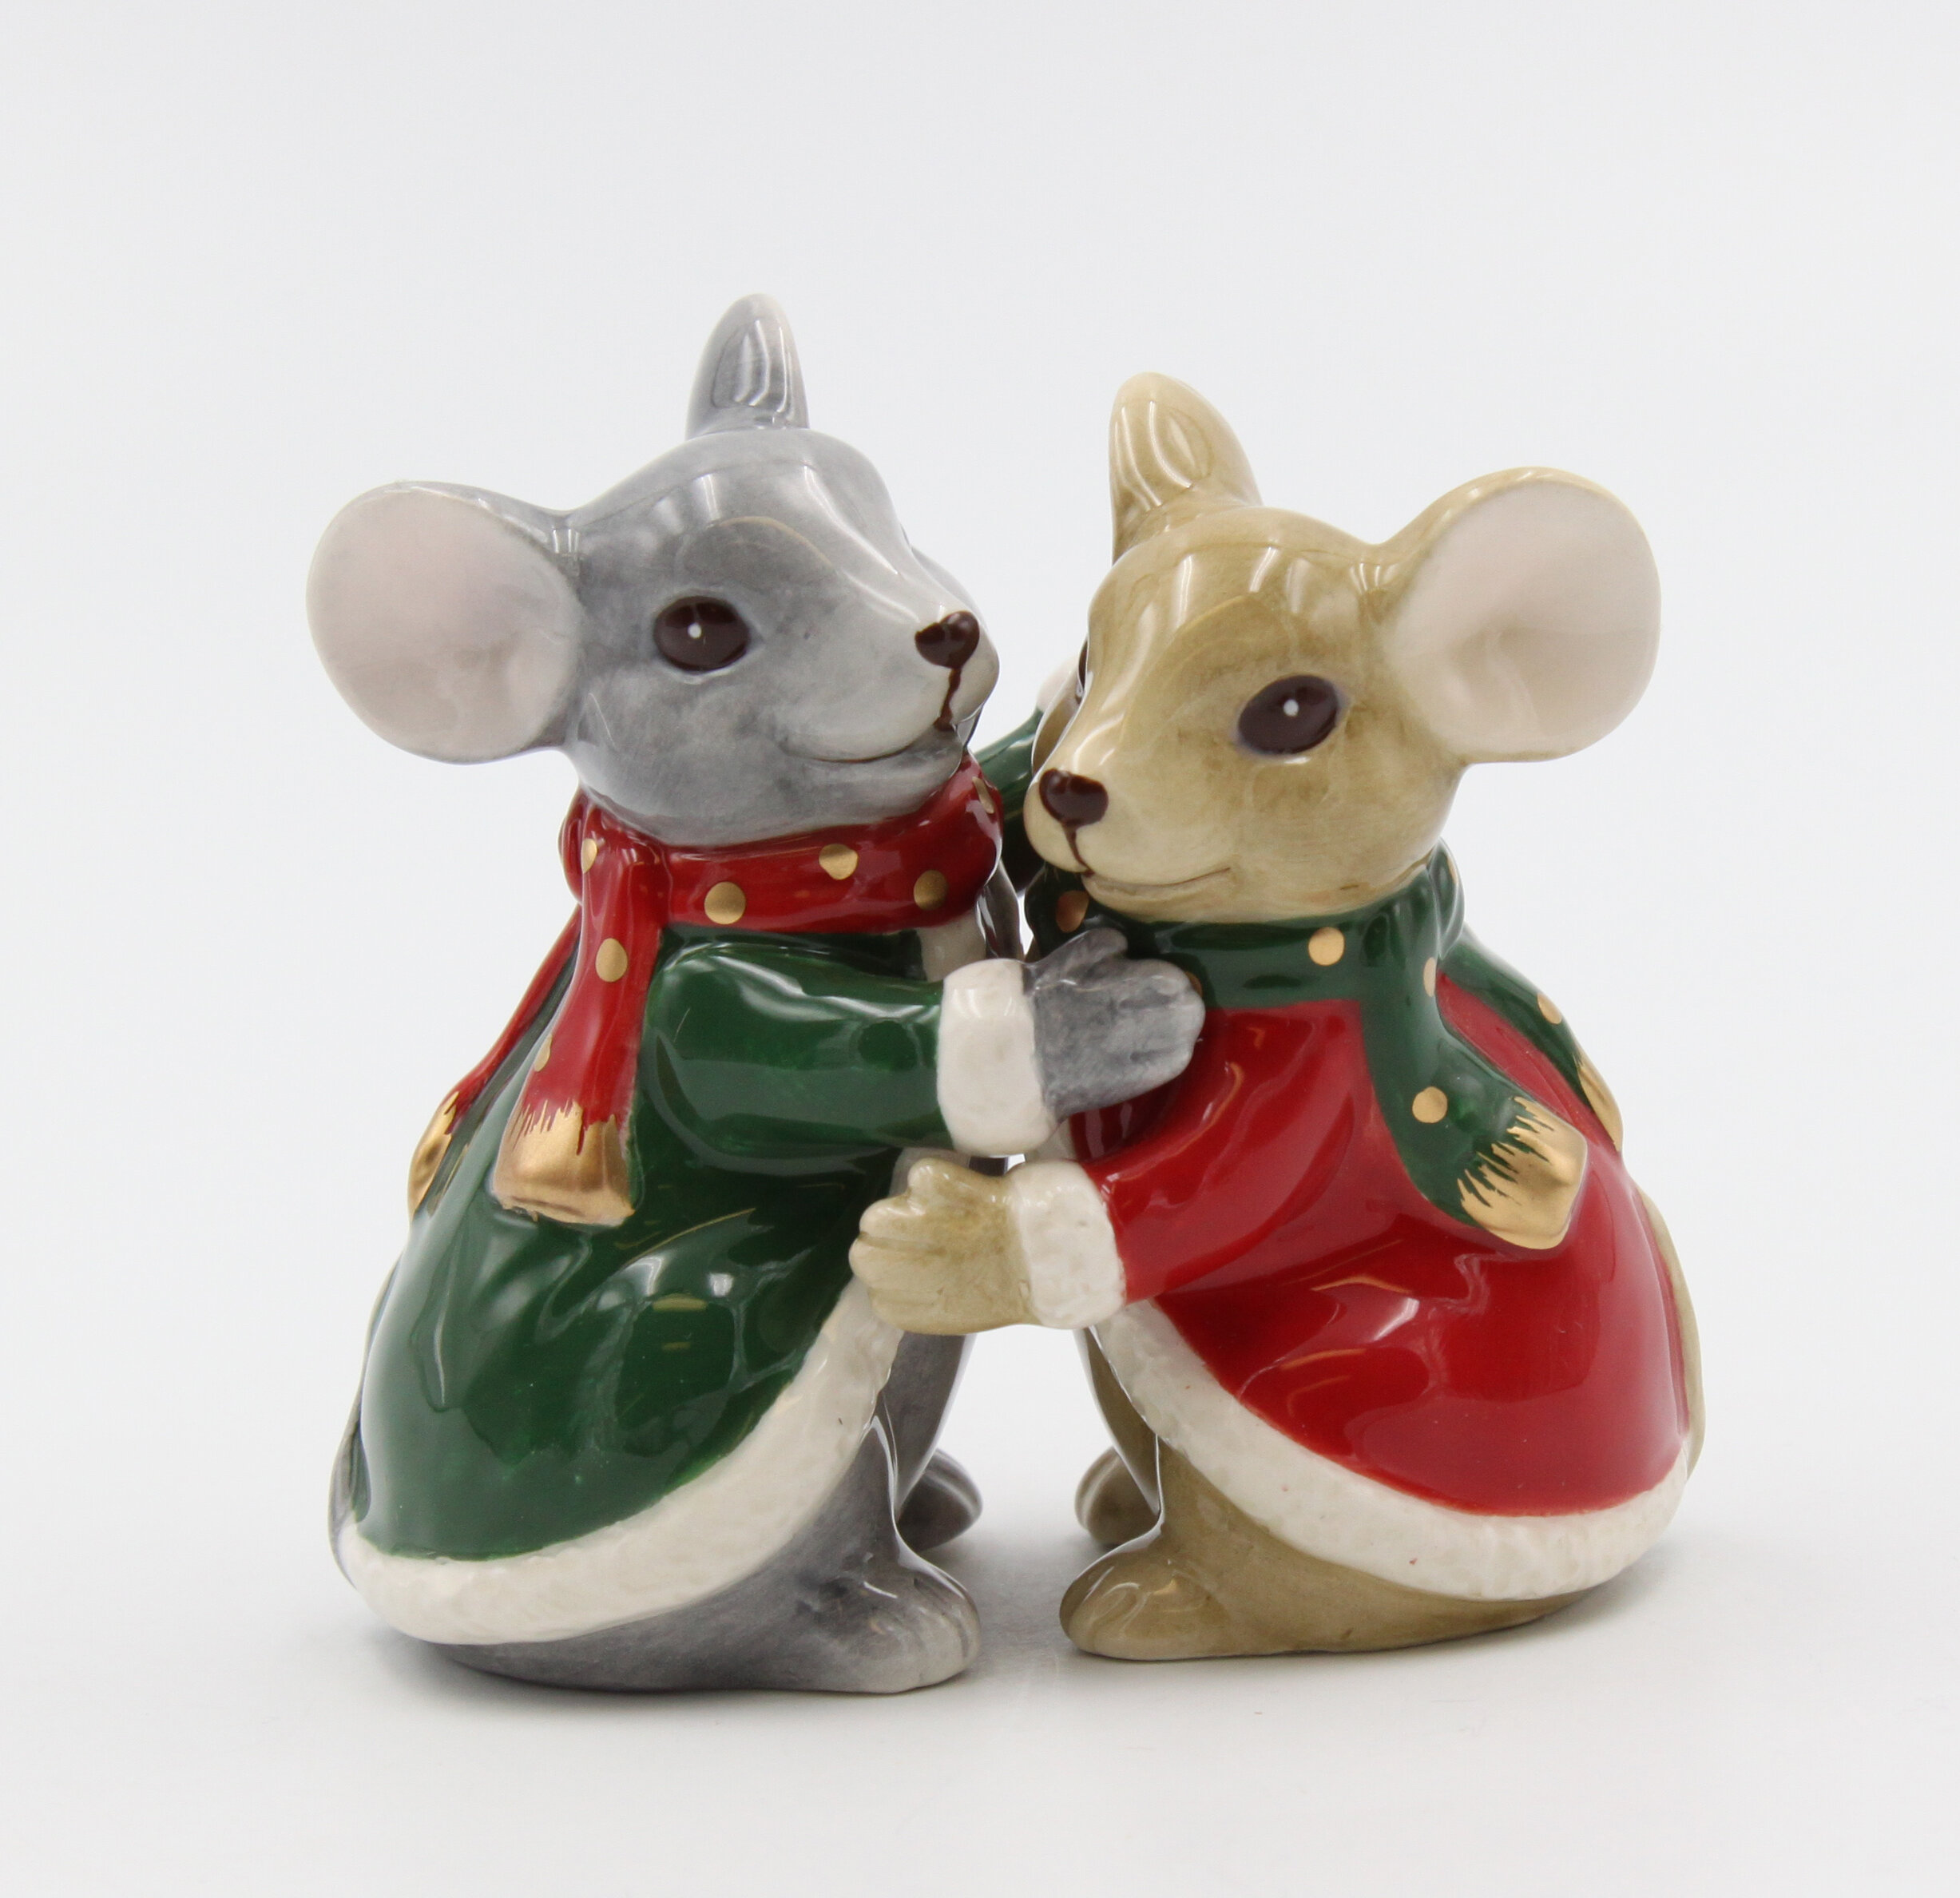 Cosmosgifts Cosmos Gifts Mice Salt And Pepper Shaker Set Wayfair